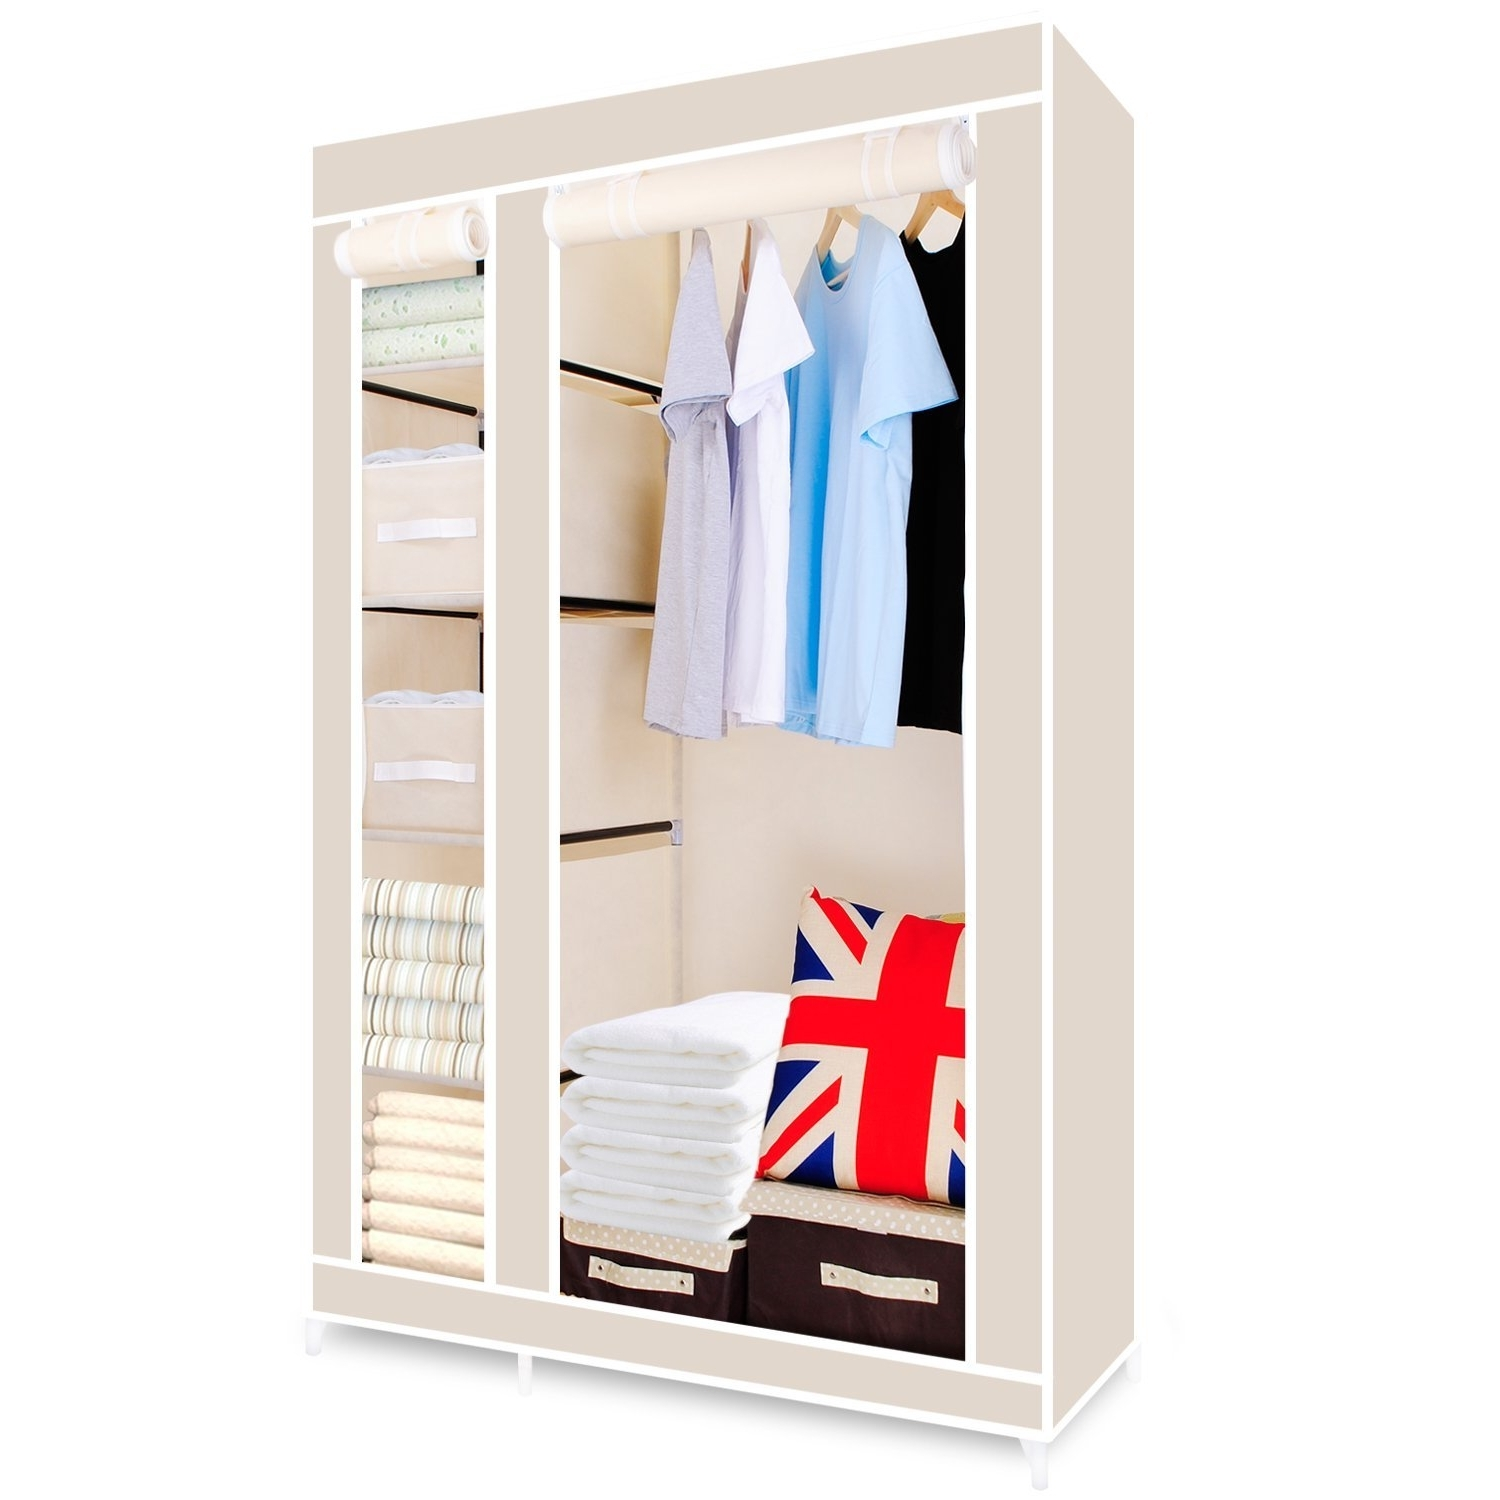 Newest Hst Mall Double Canvas Wardrobe Cupboard Clothes Storage Solution Pertaining To Double Wardrobes Hanging Rail And Supports (View 12 of 15)